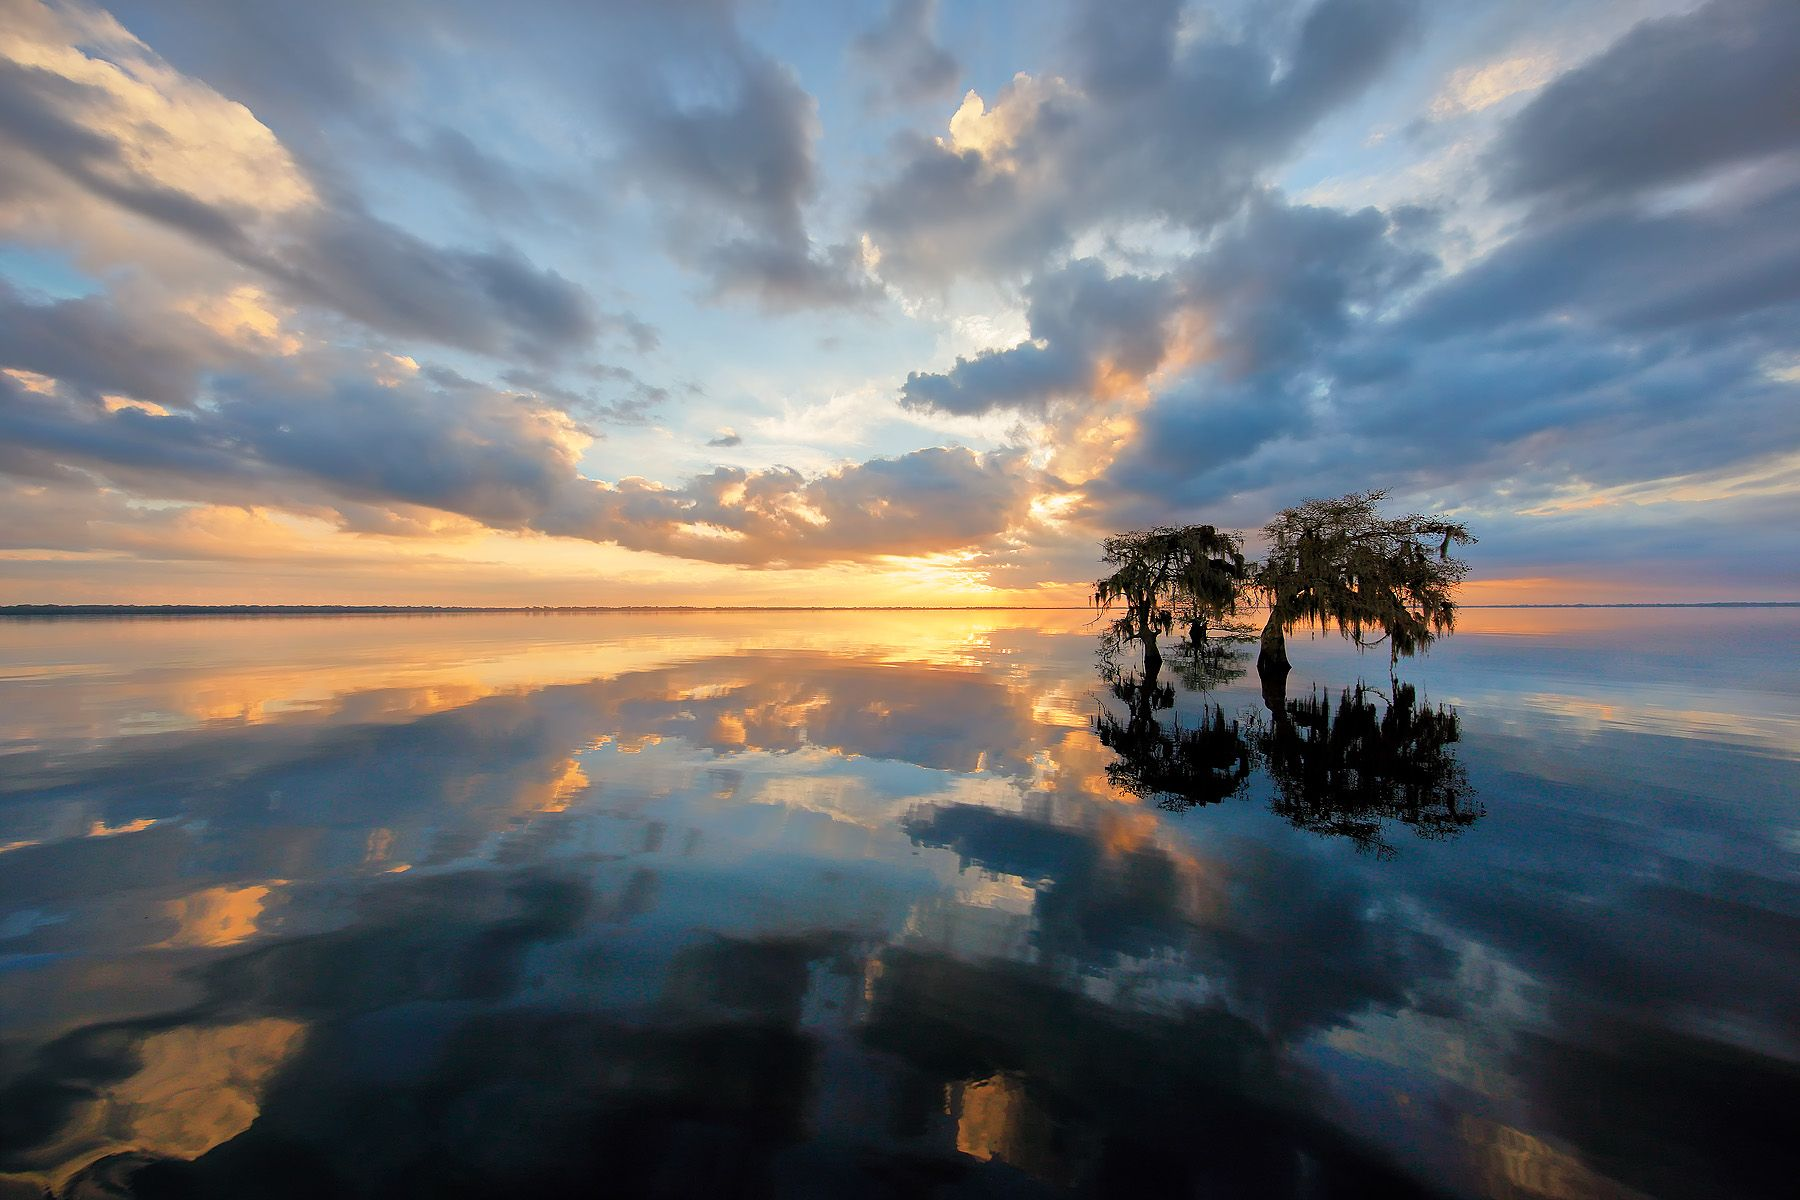 Sunrise at the lake II_83A1724-Blue Lake Cypress, FL, USA.jpg